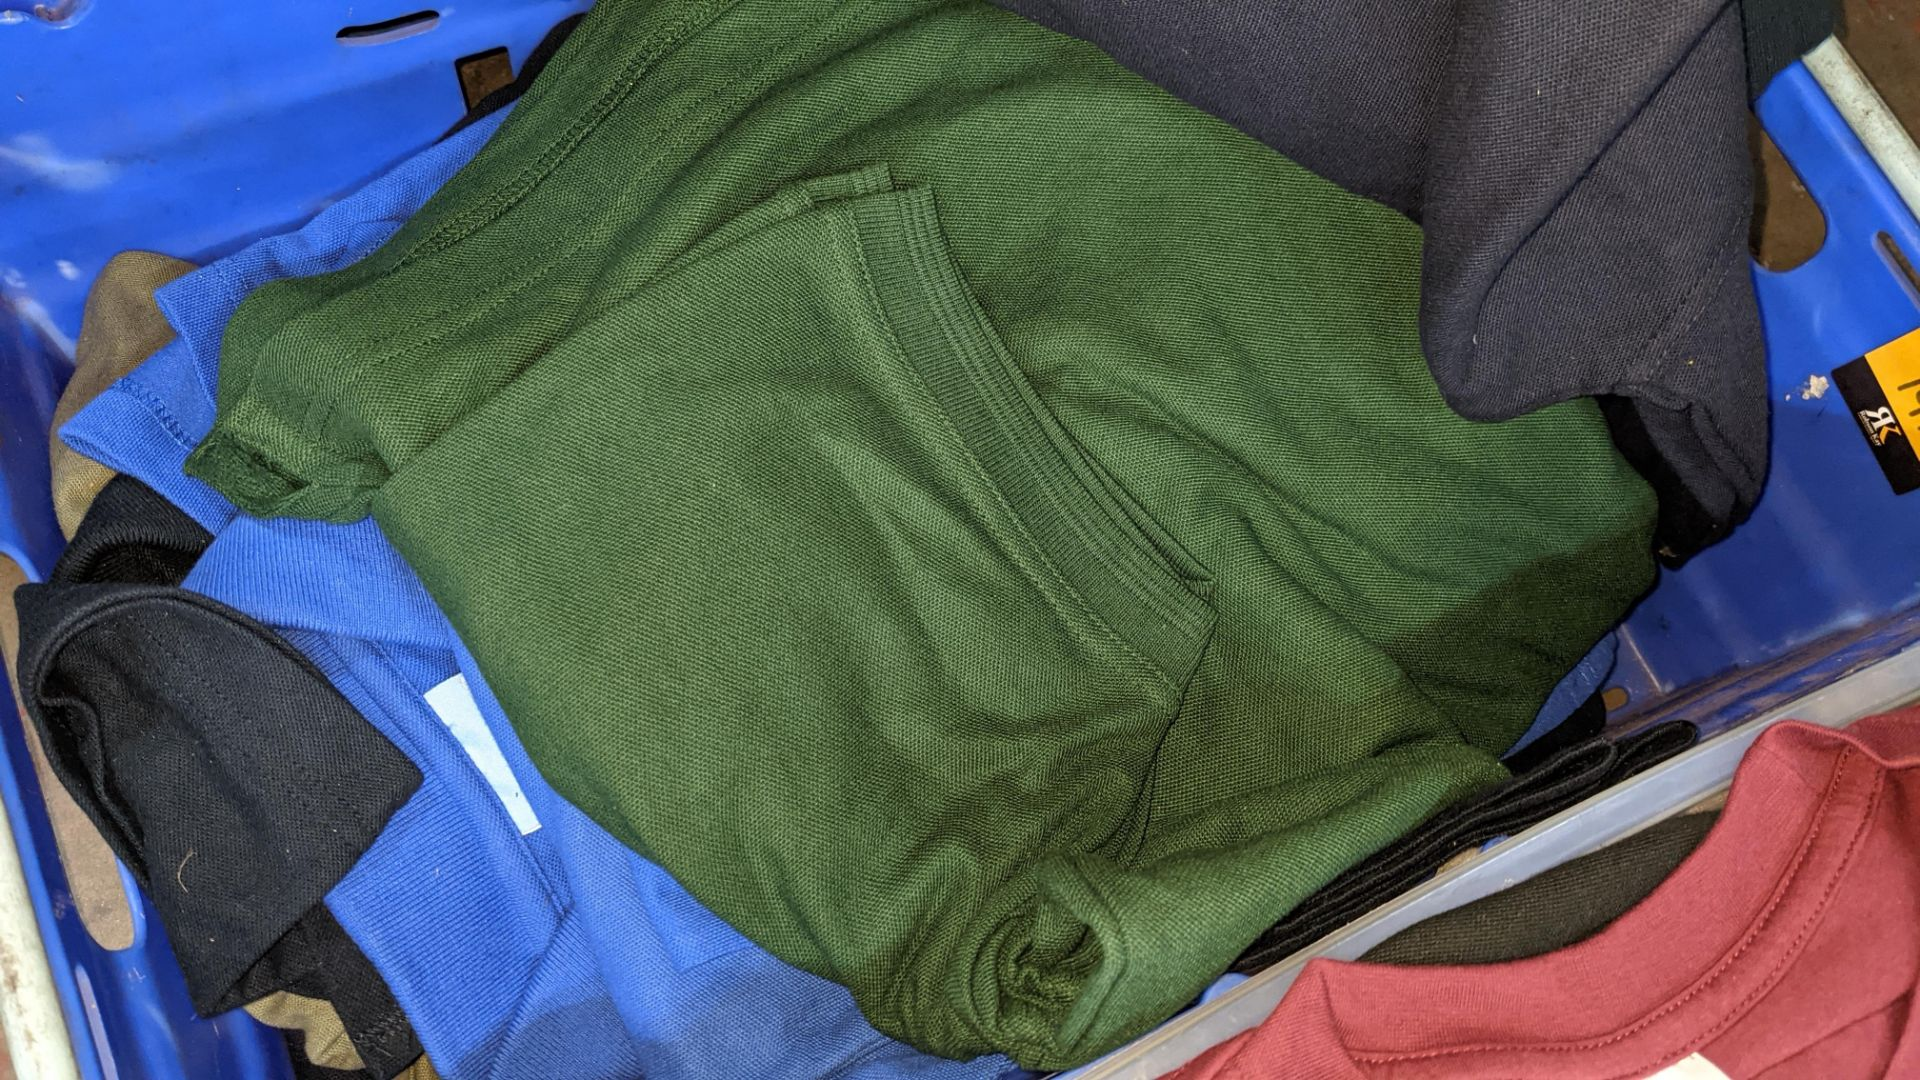 Approx 23 off Uneek assorted blue polo shirts - Image 5 of 6